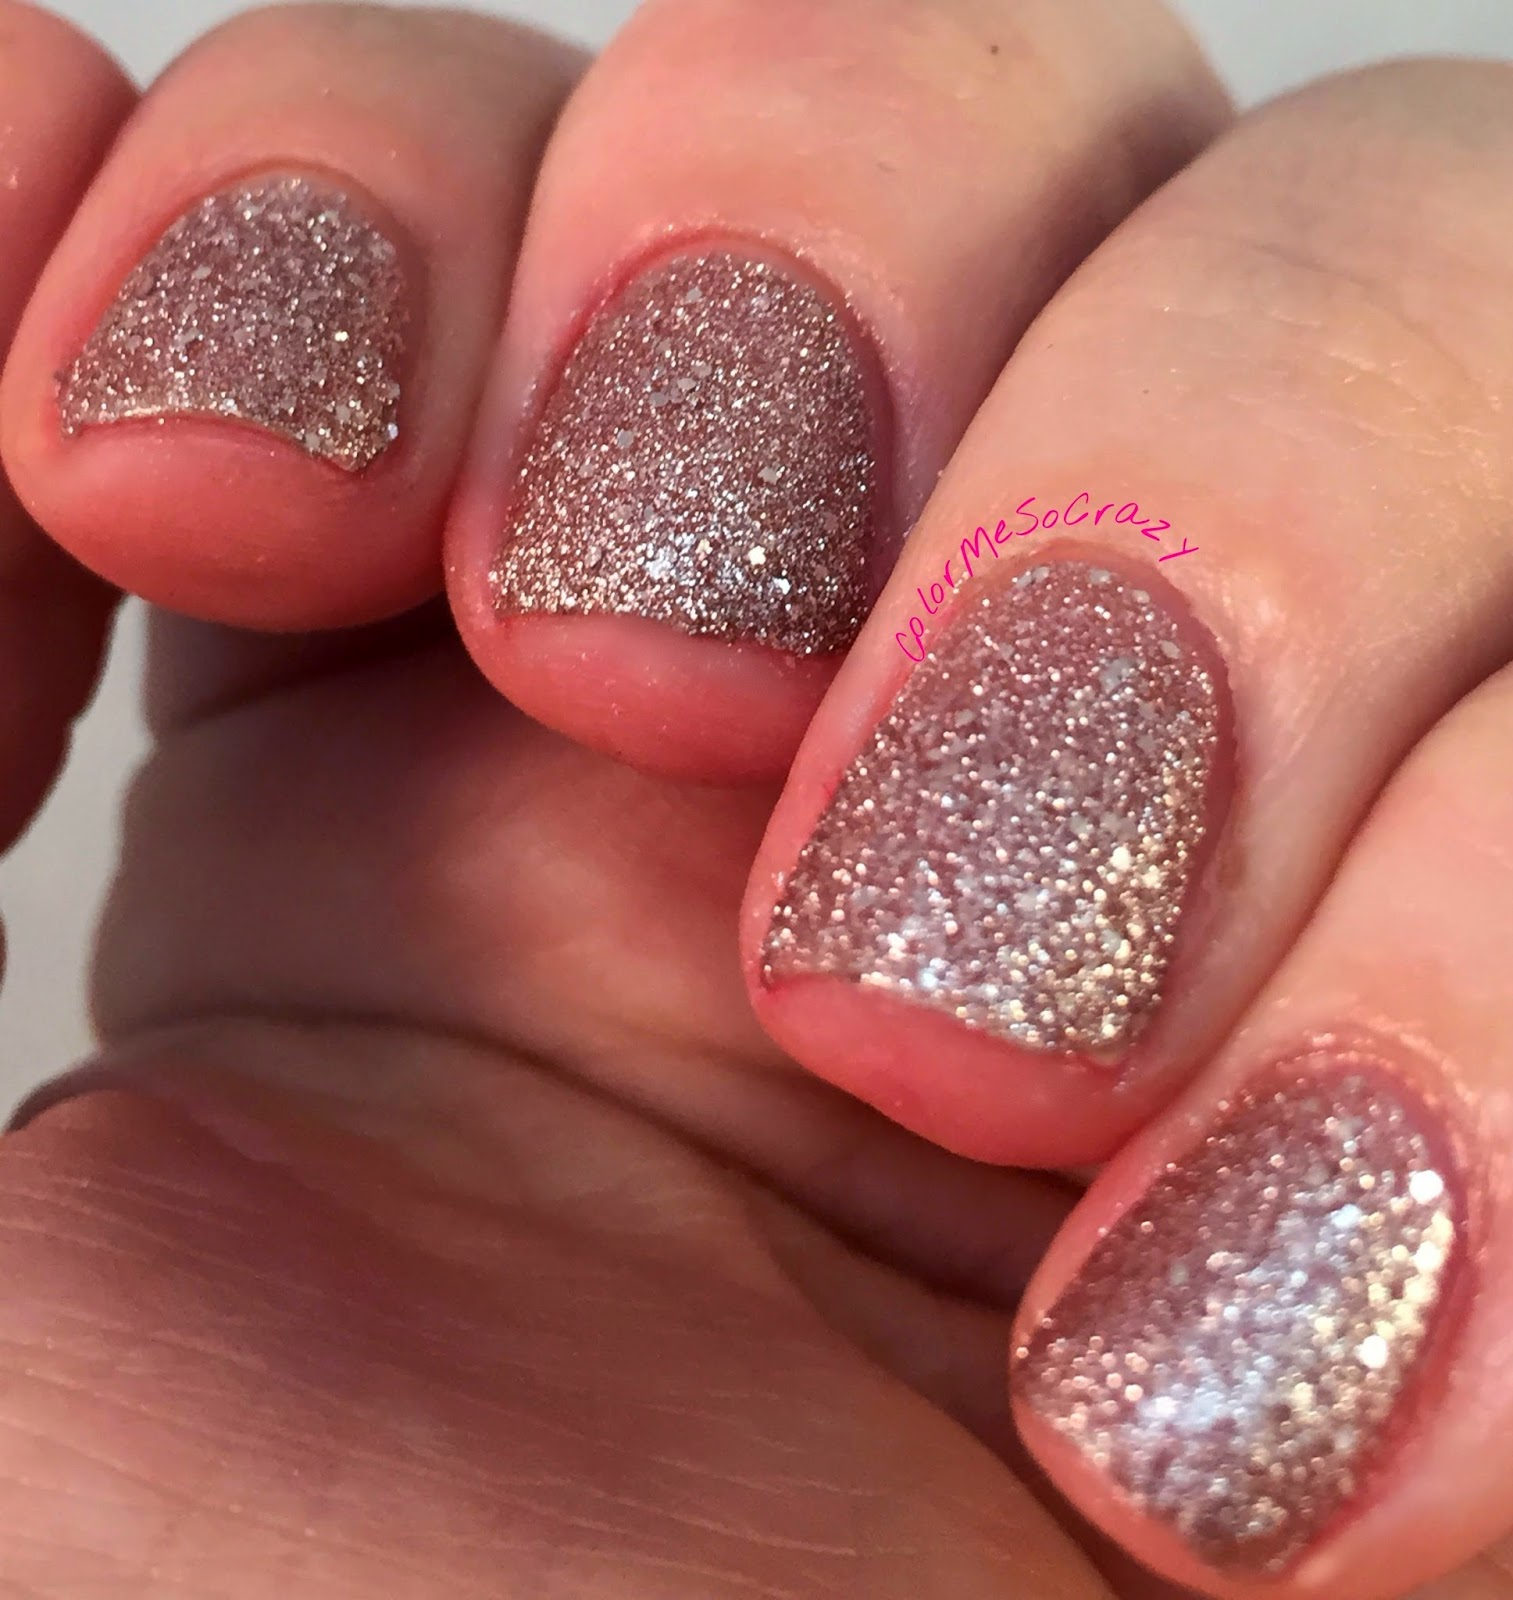 clubbing-girl-nail-polish, club-girl, gold-glitter-nail-polish, stripper-nail-polish, glitter-bomb